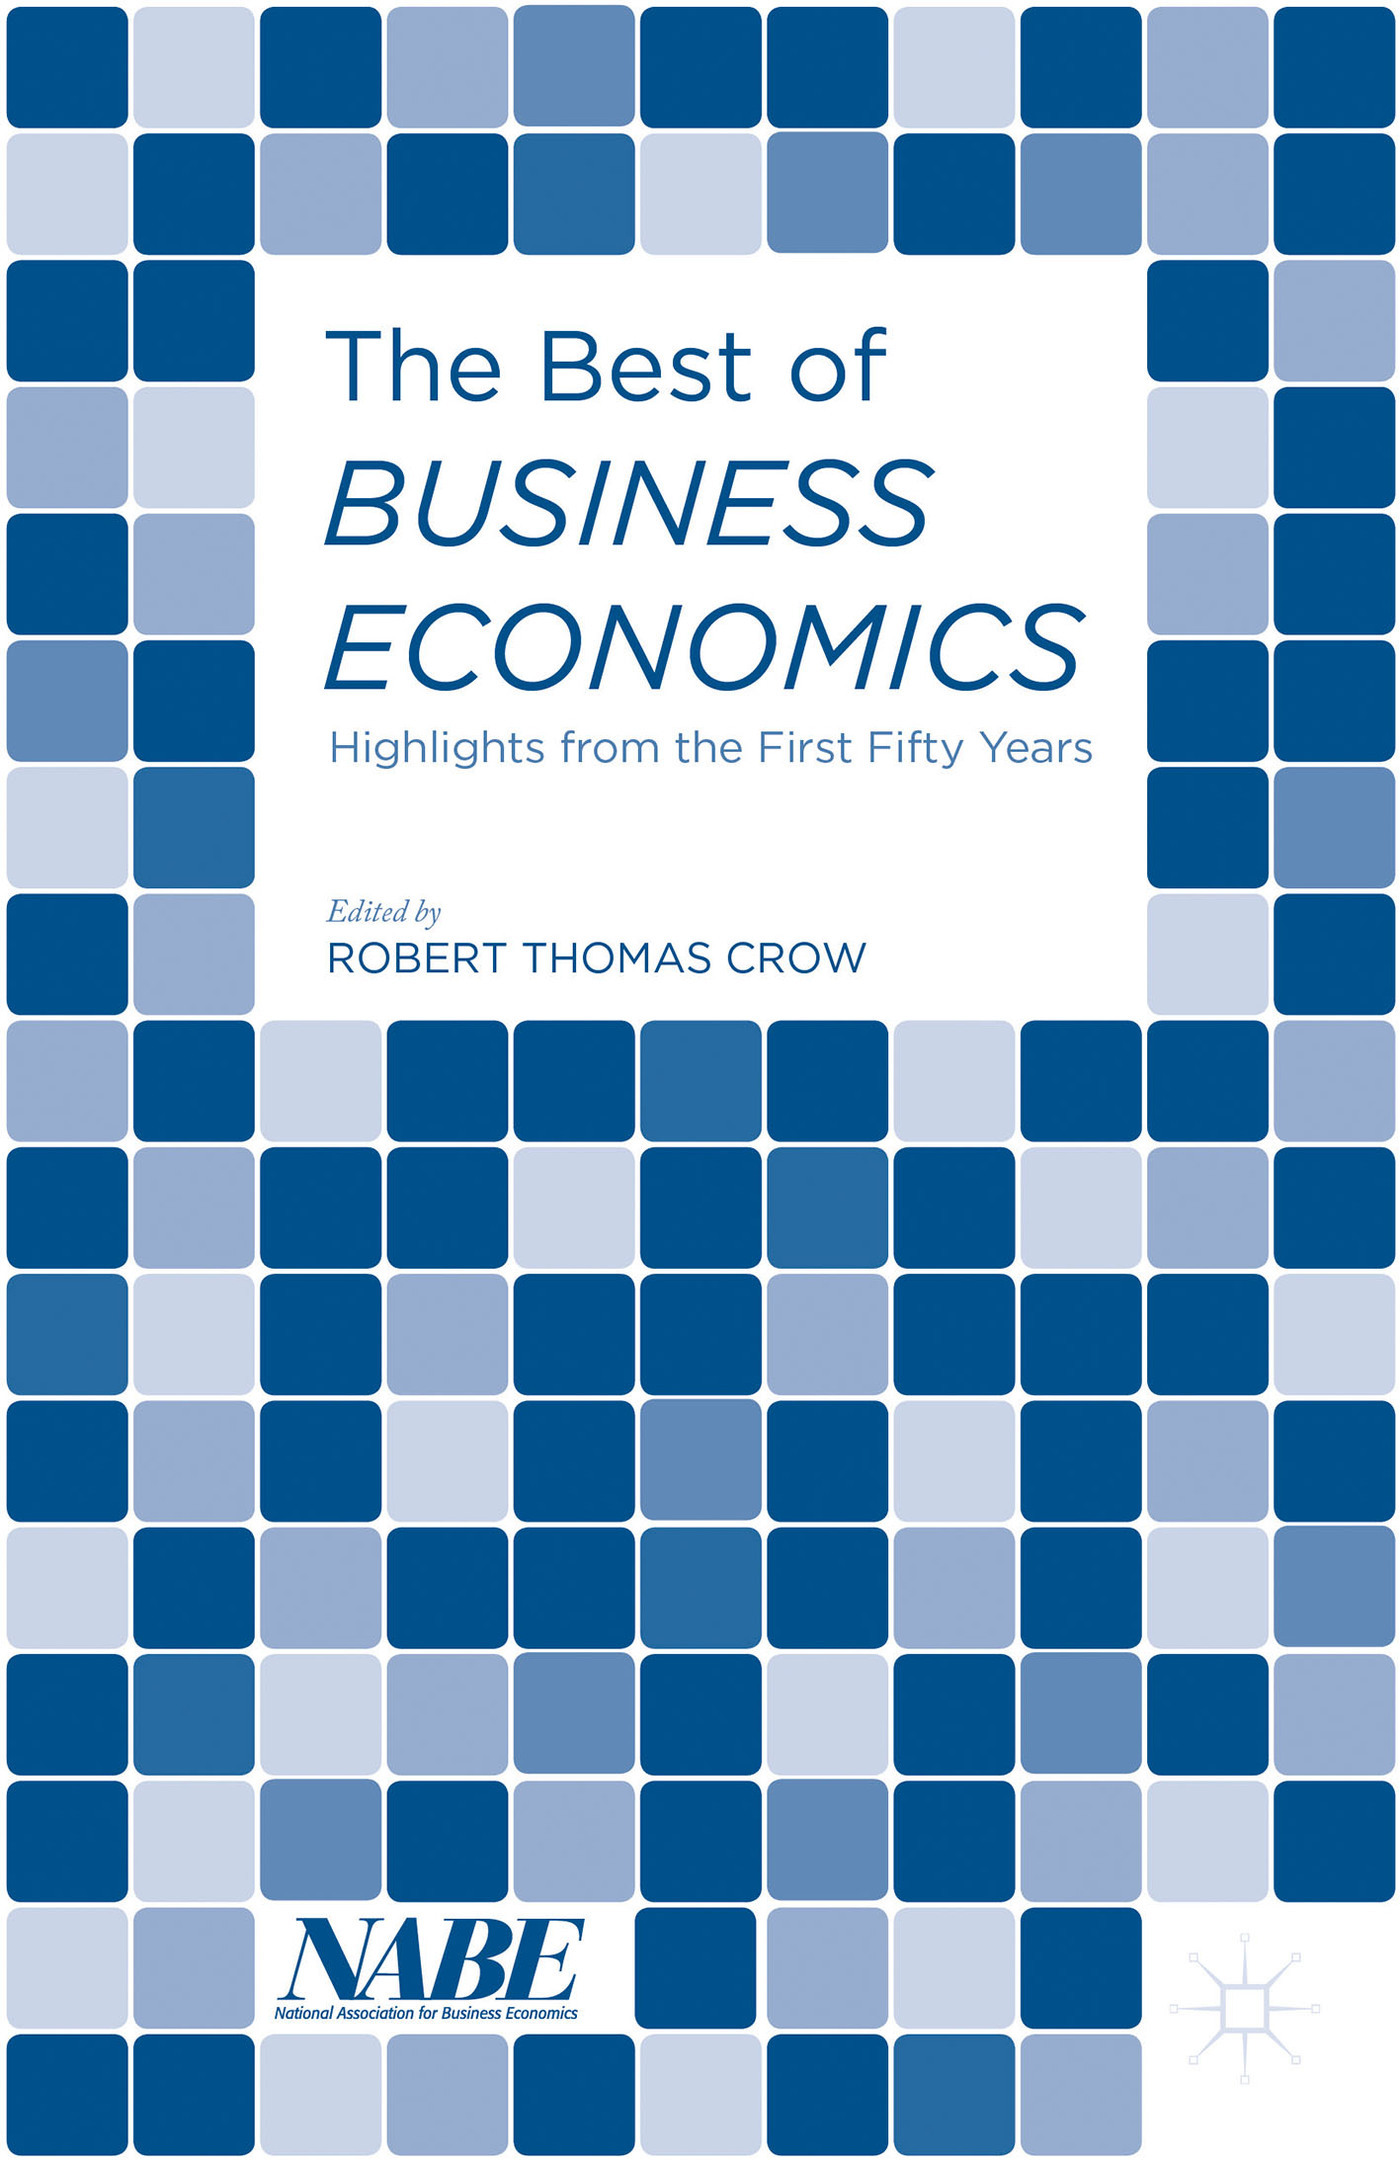 The Best of Business Economics Highlights from the First Fifty Years